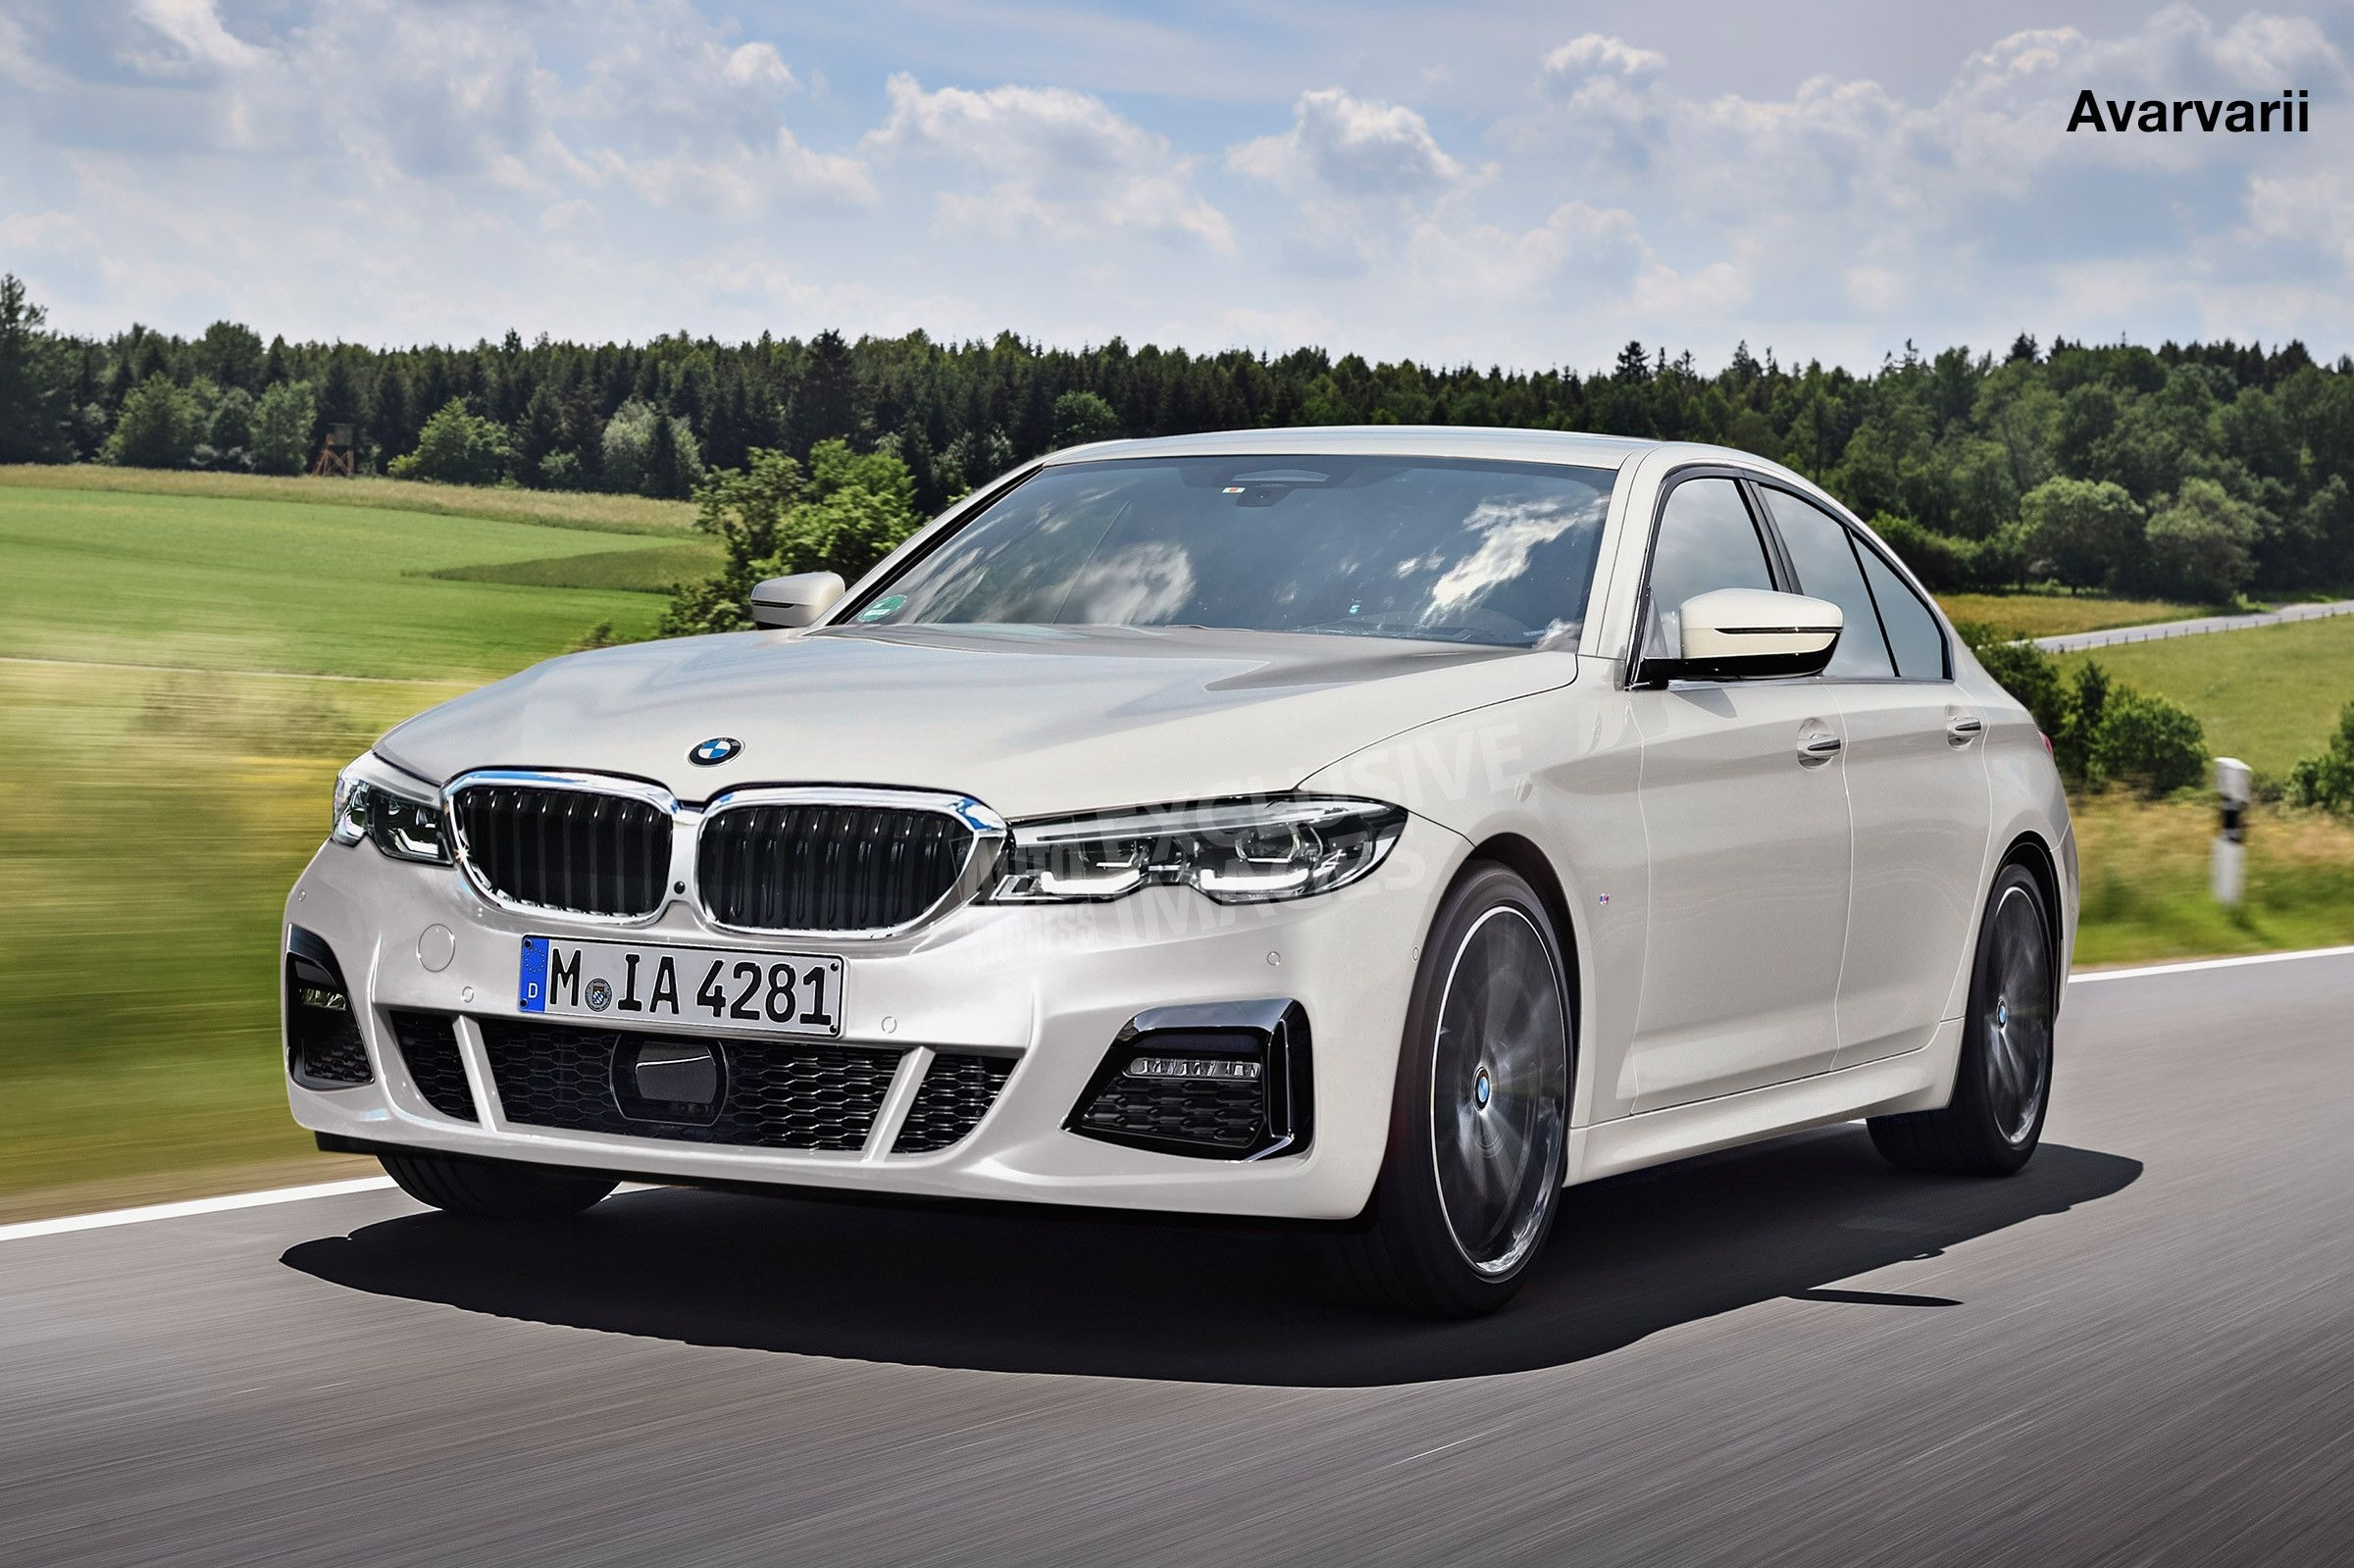 30 Best 2019 BMW 3 Series Edrive Phev Review